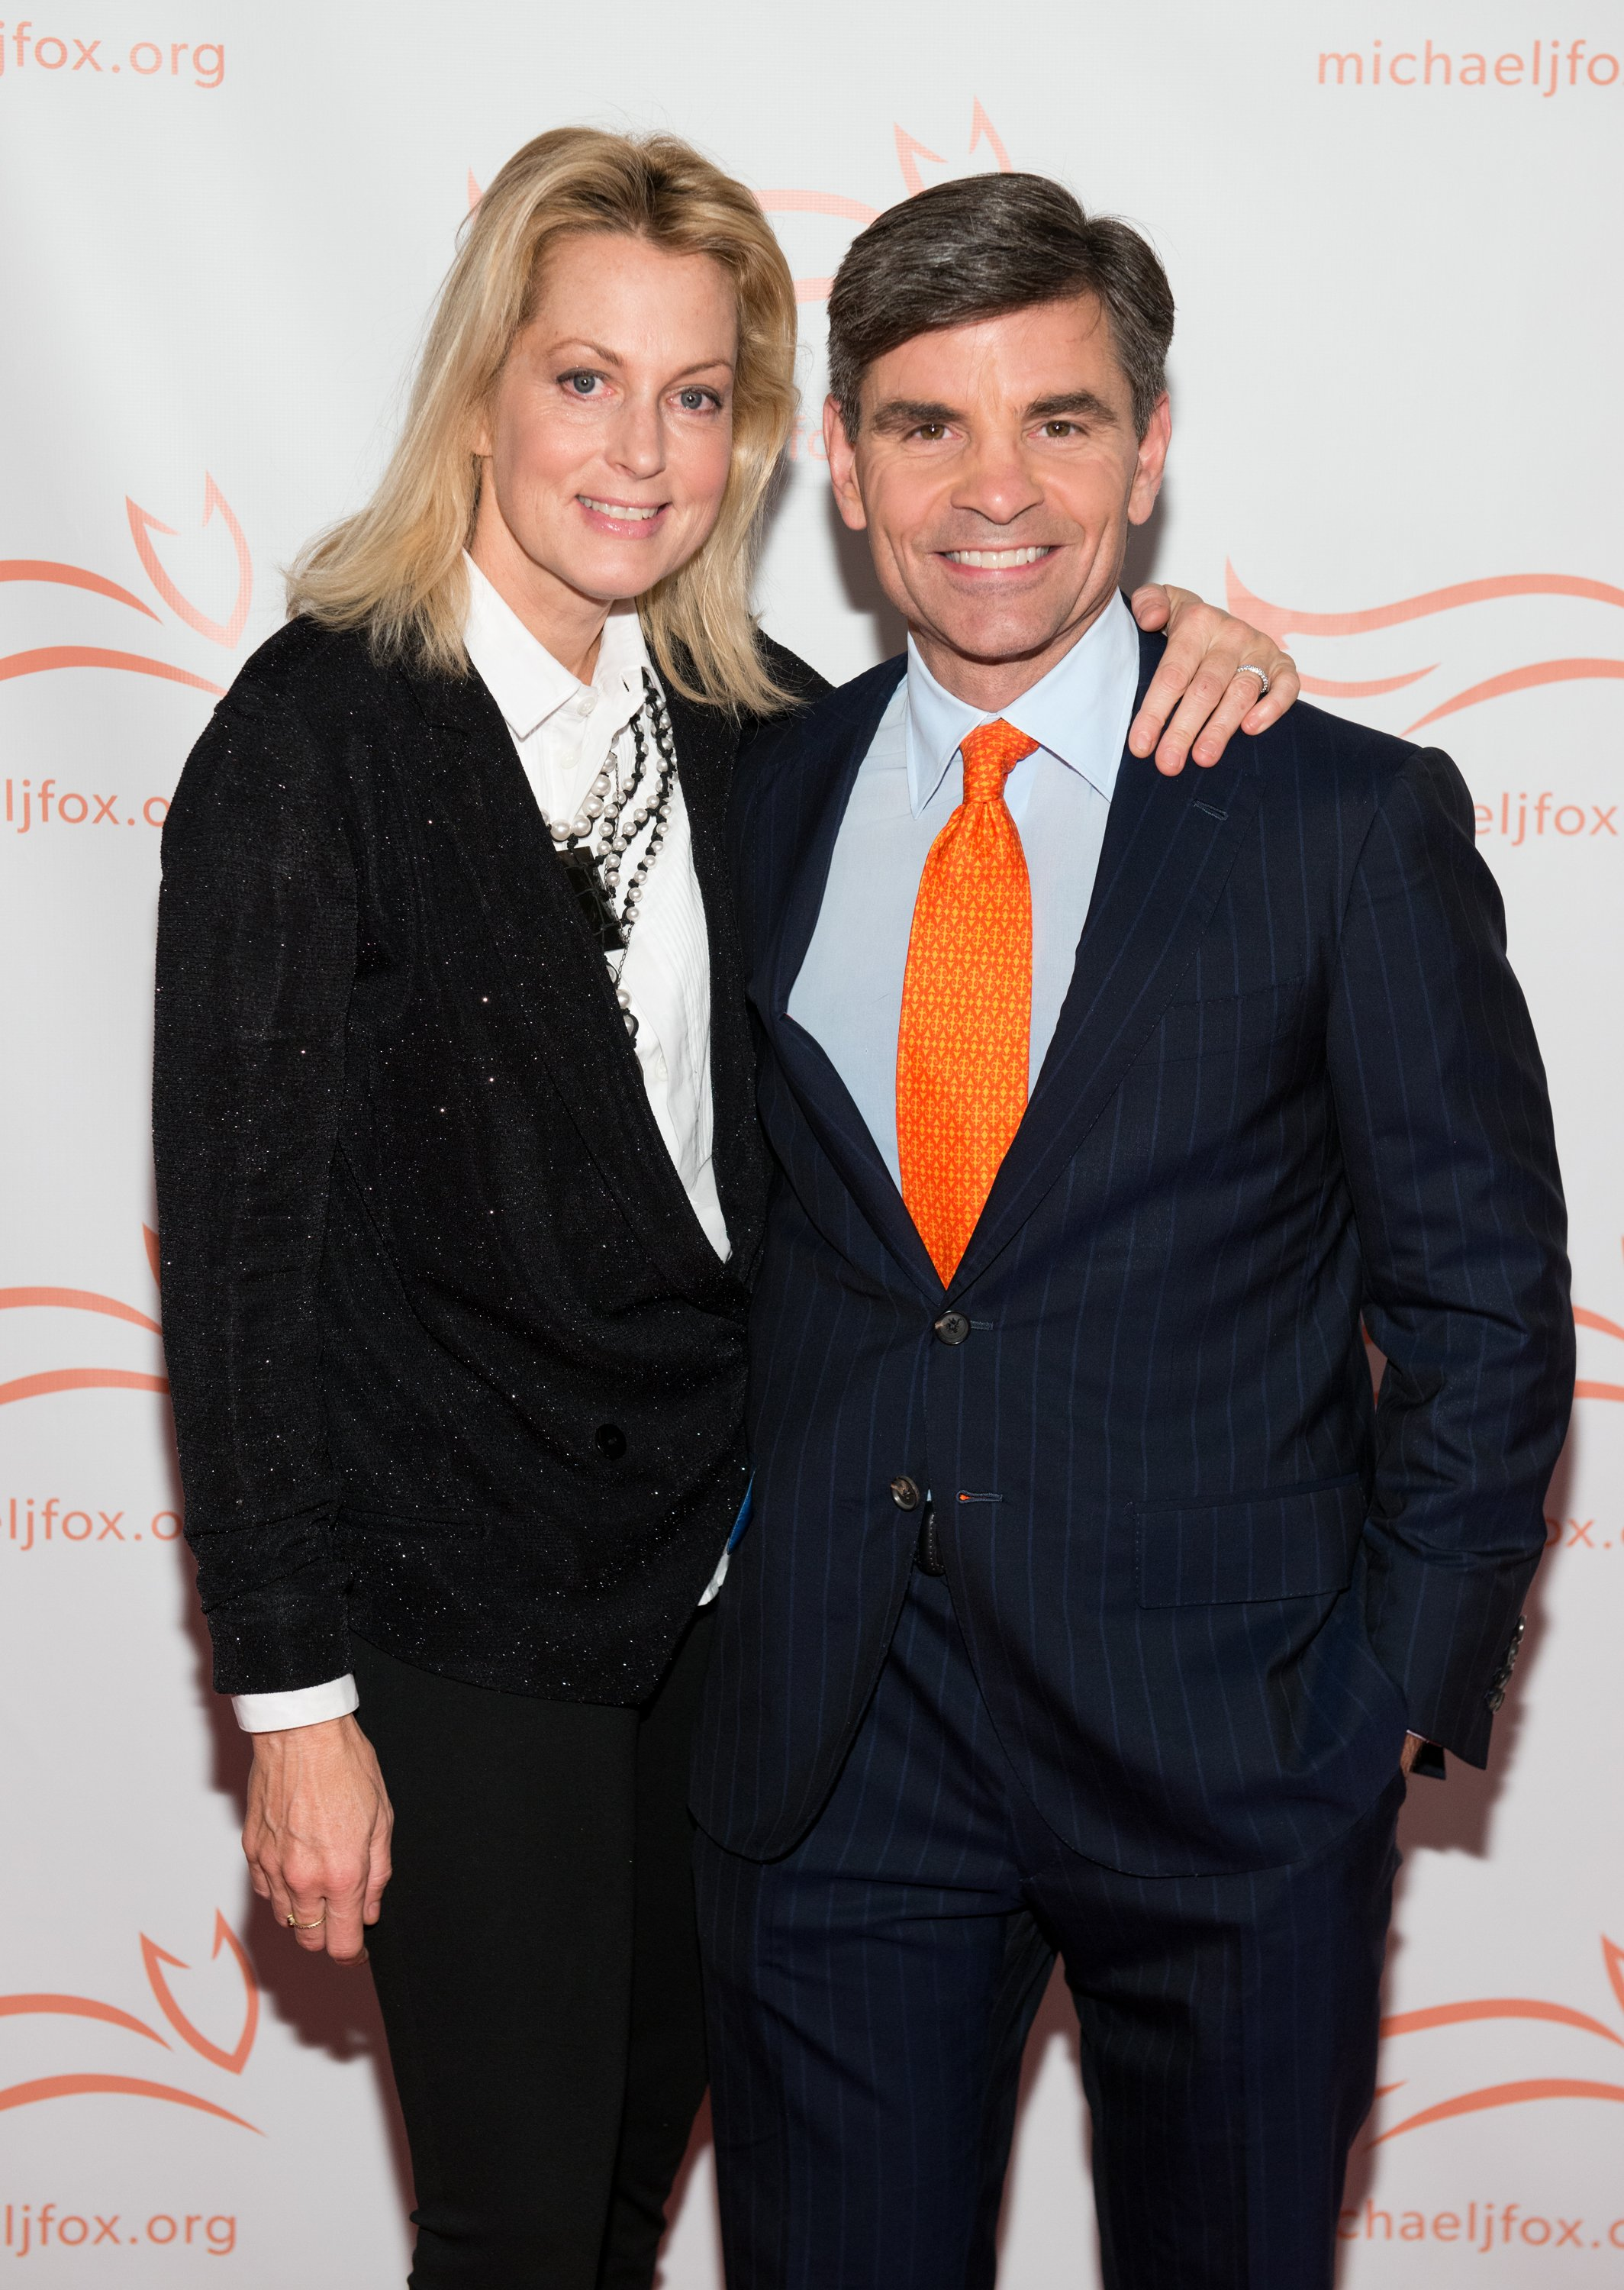 Ali Wentworth and George Stephanopoulos on November 14, 2015, in New York City. | Photo: Getty Images.